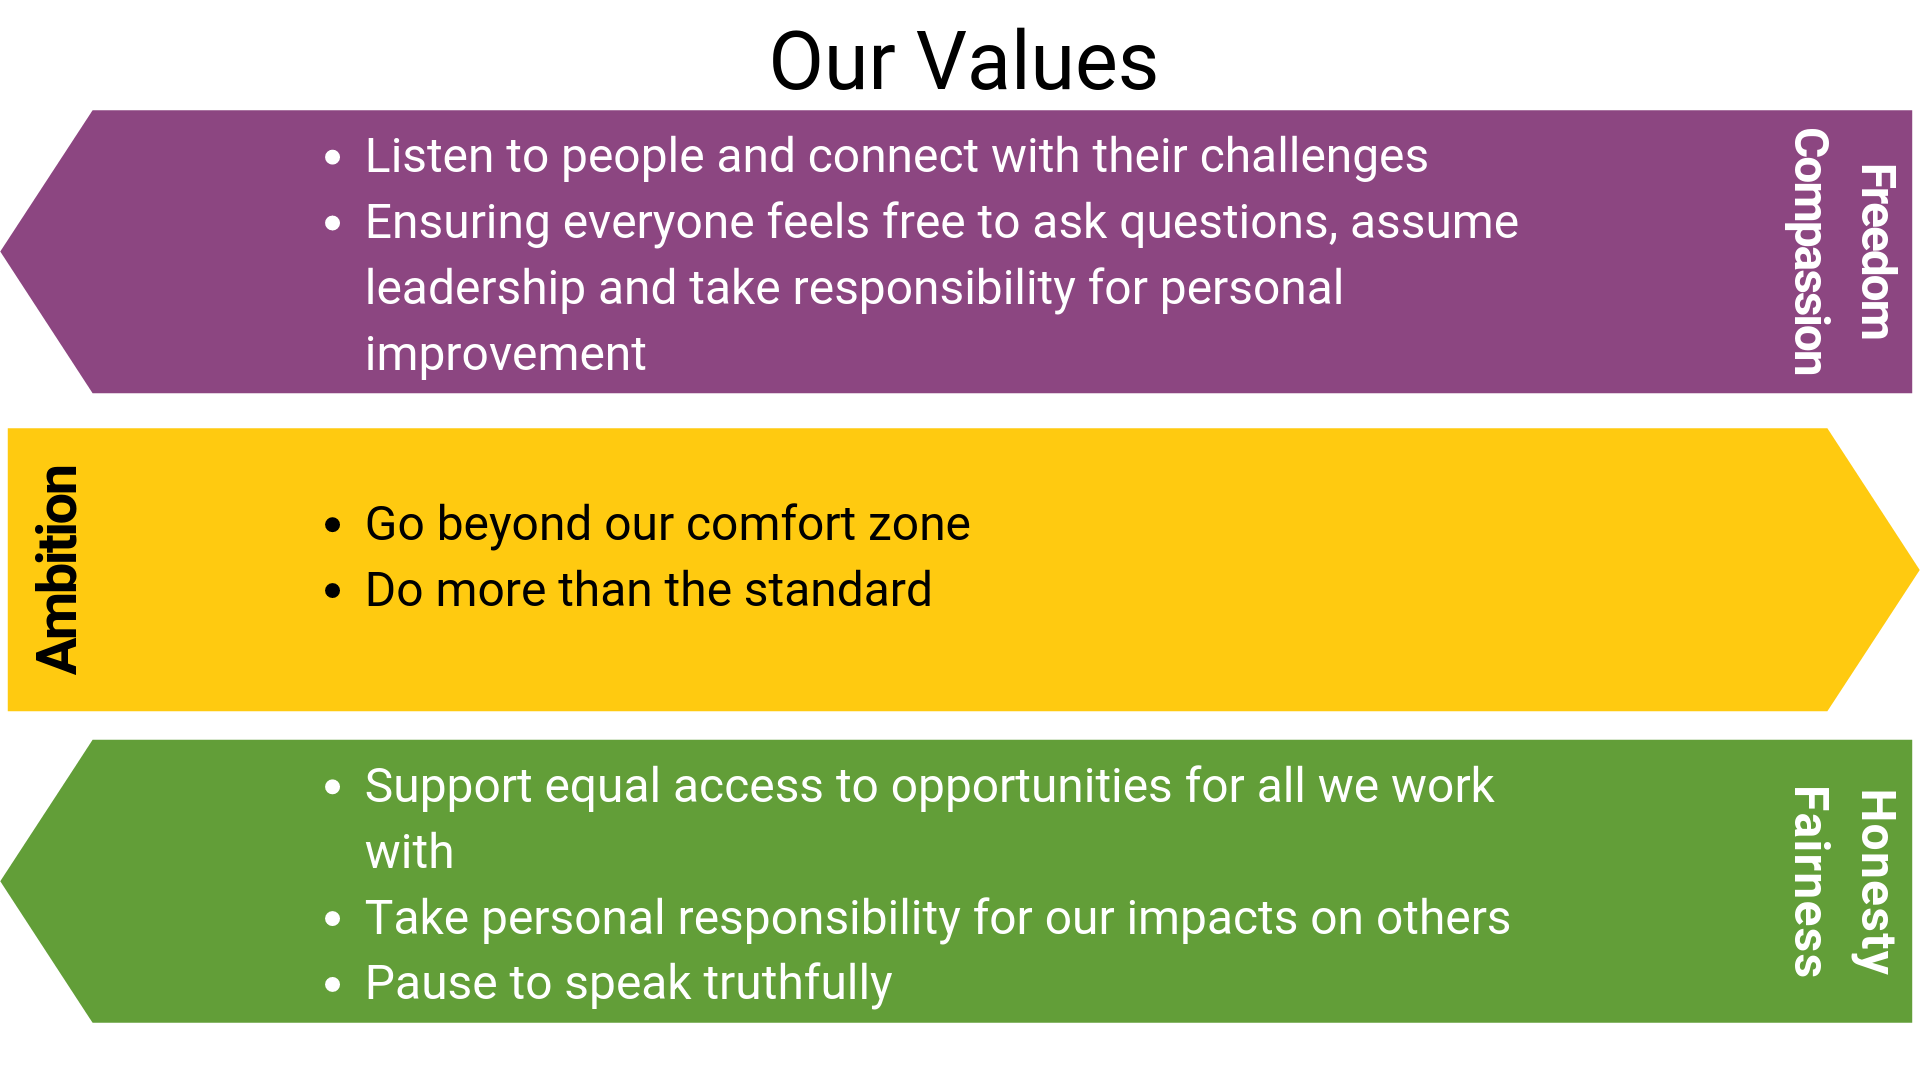 Overview of our values of Freedom, Compassion, Ambition, Honesty and Fairness